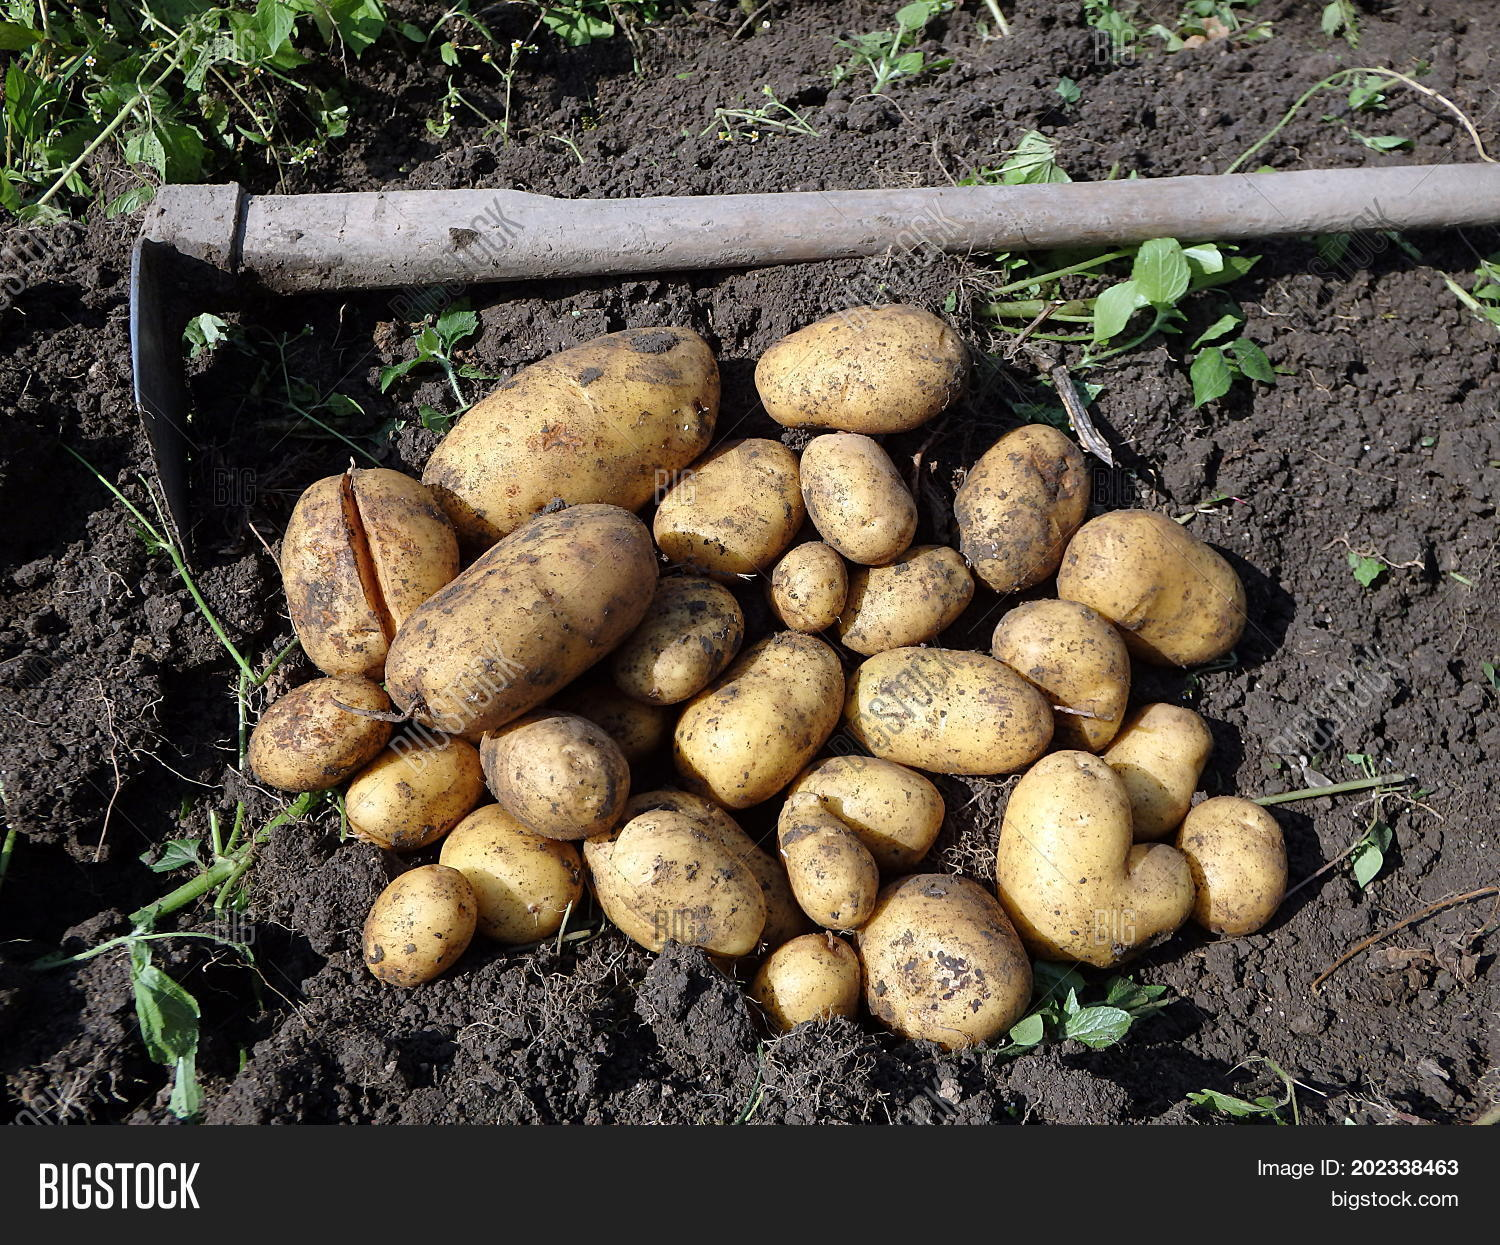 Potato Harvesting , Image & Photo (Free Trial) | Bigstock